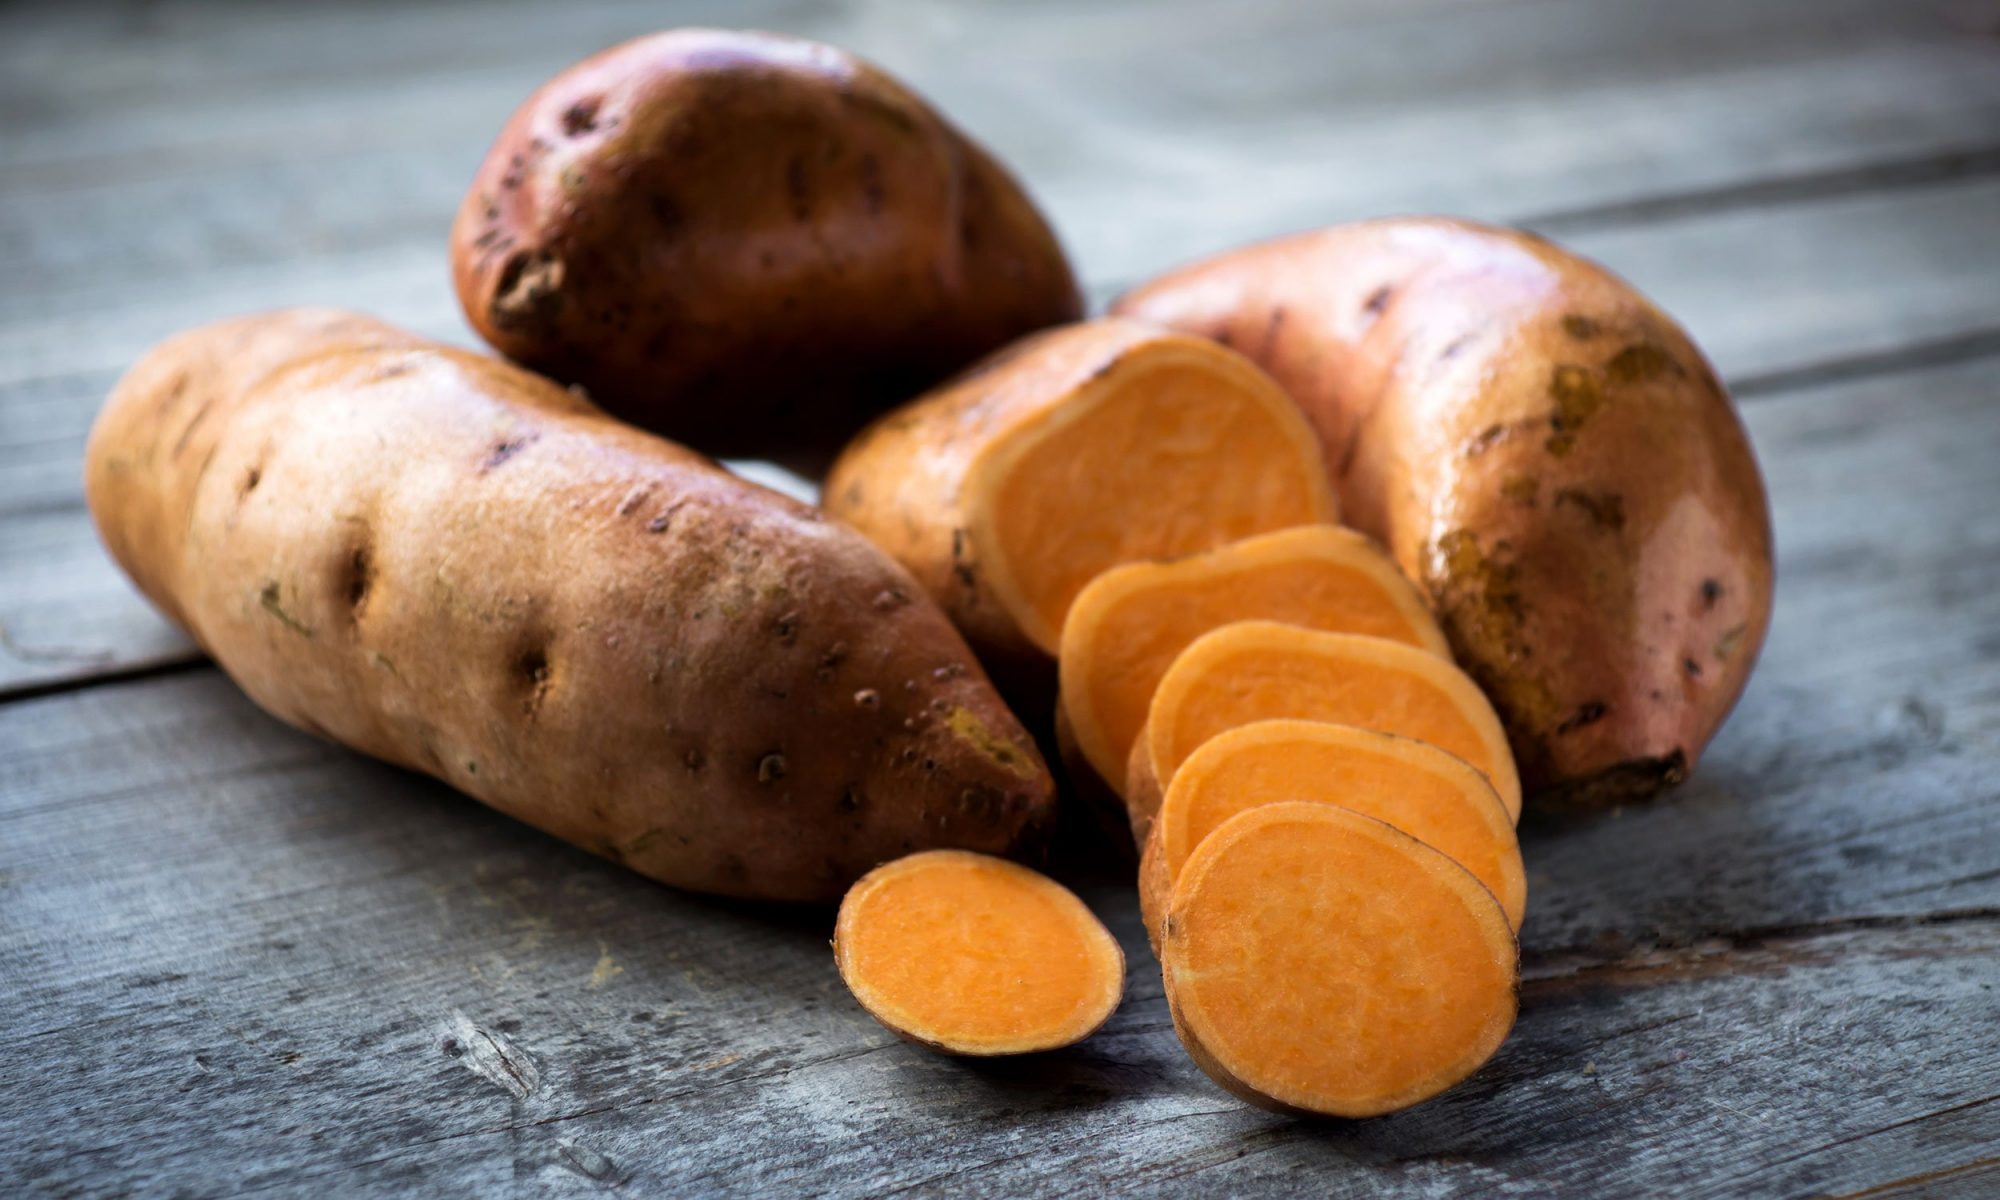 EC: How to Store Sweet Potatoes So They Don't Shrivel Up